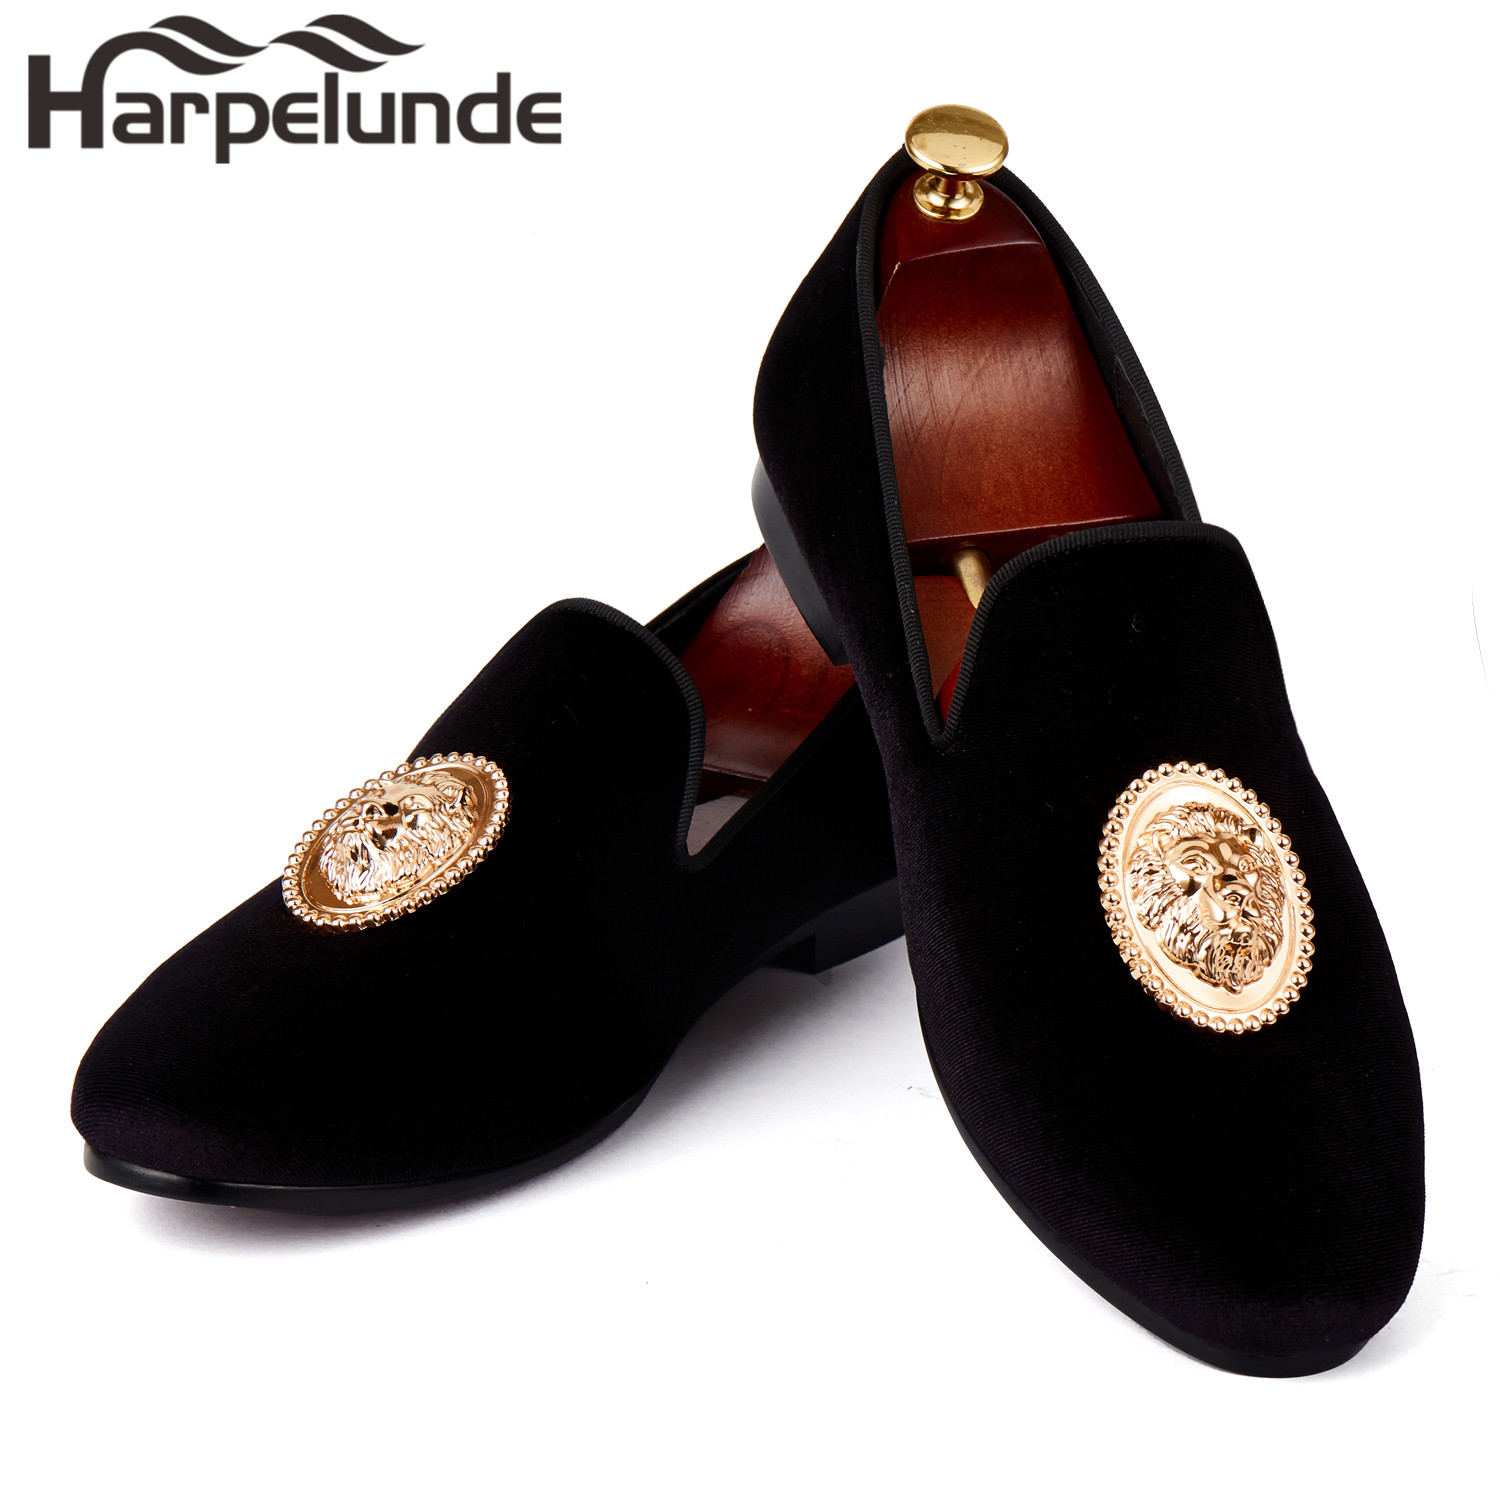 Harpelunde Heren Event Schoenen Lion Buckle Dress Schoenen Black Velvet Loafer Slippers Maat 6-14